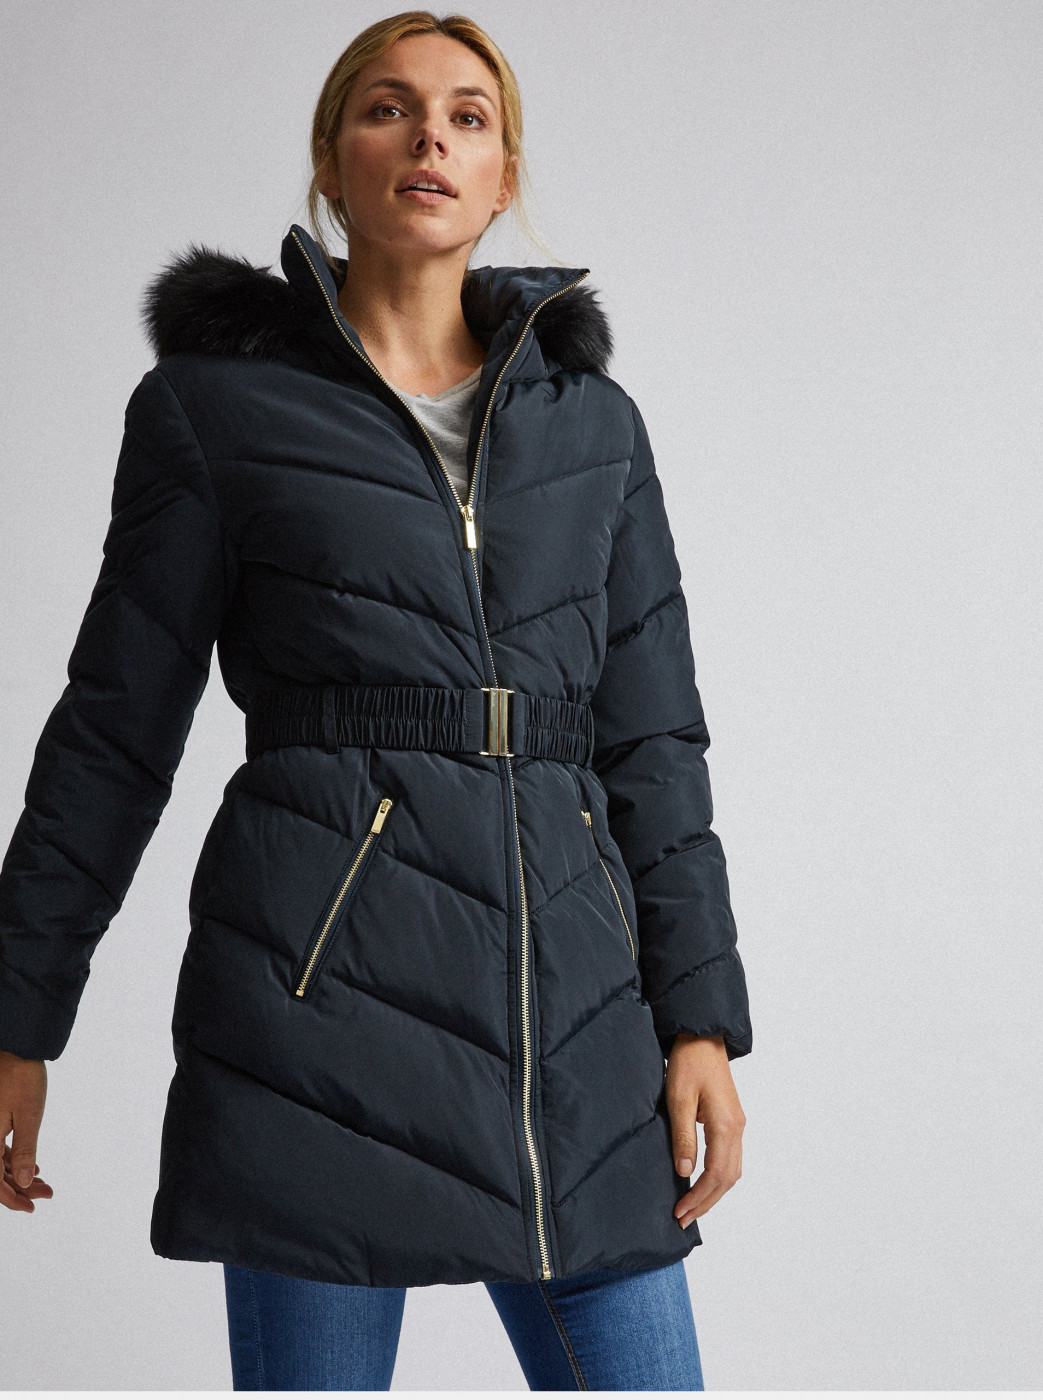 Dorothy Perkins Dark Blue Quilted Winter Coat